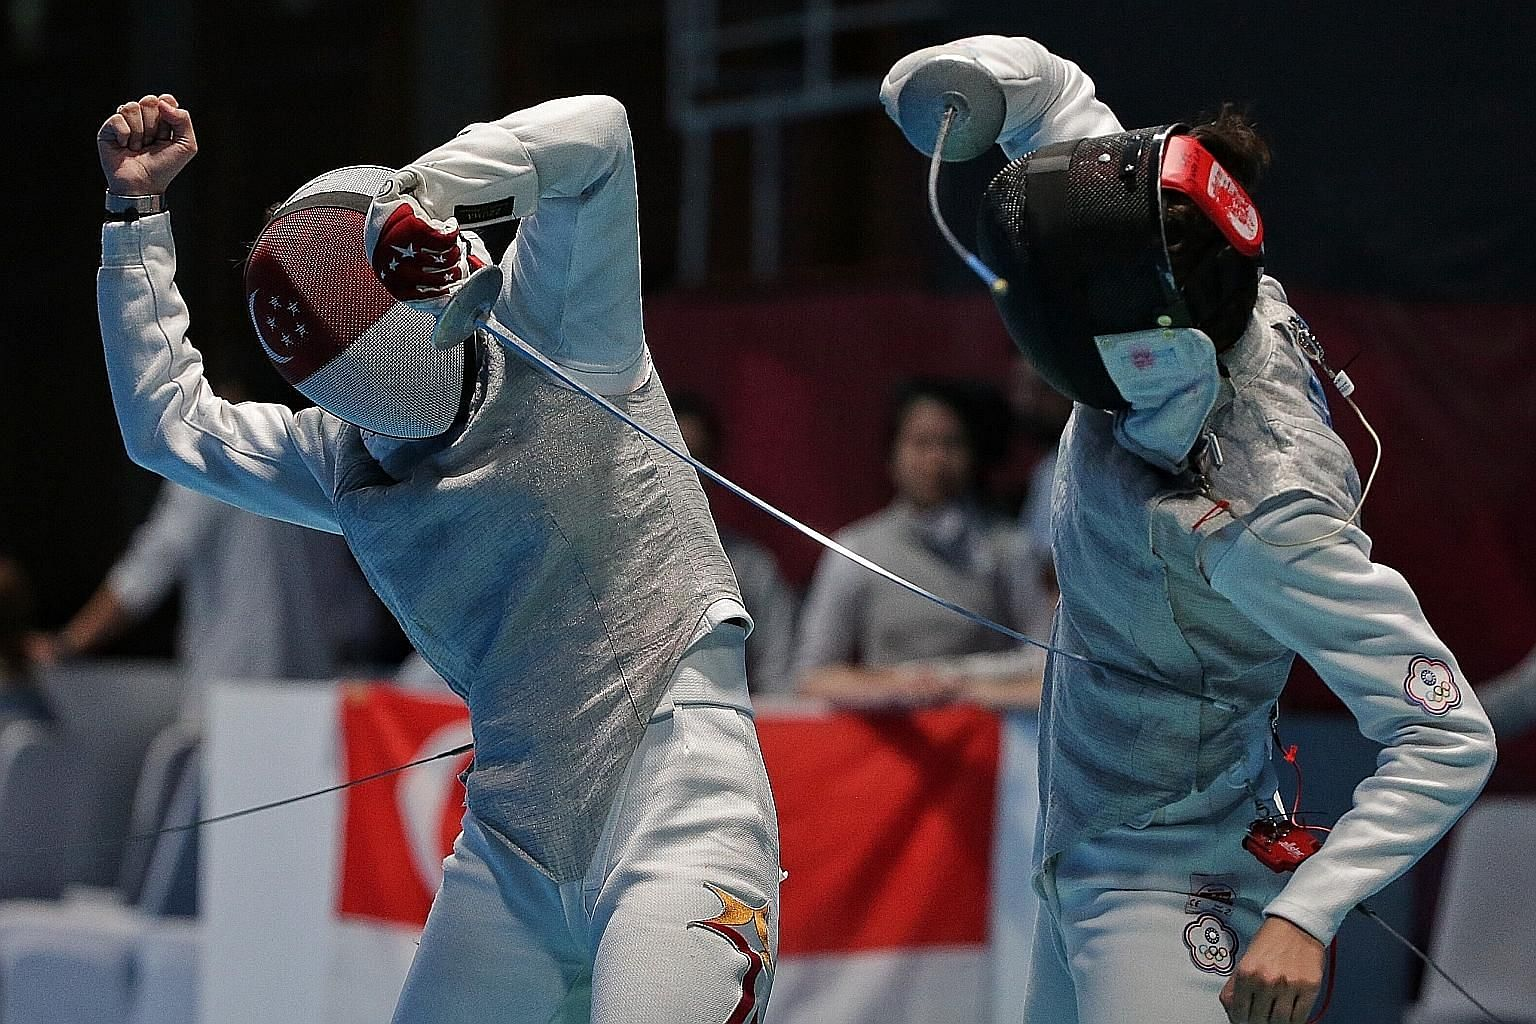 Singapore's Amita Berthier goes on the offensive against Chinese Taipei's Yang Chin-man during their bout in their women's foil team quarter-final at the Jakarta Convention Centre yesterday.